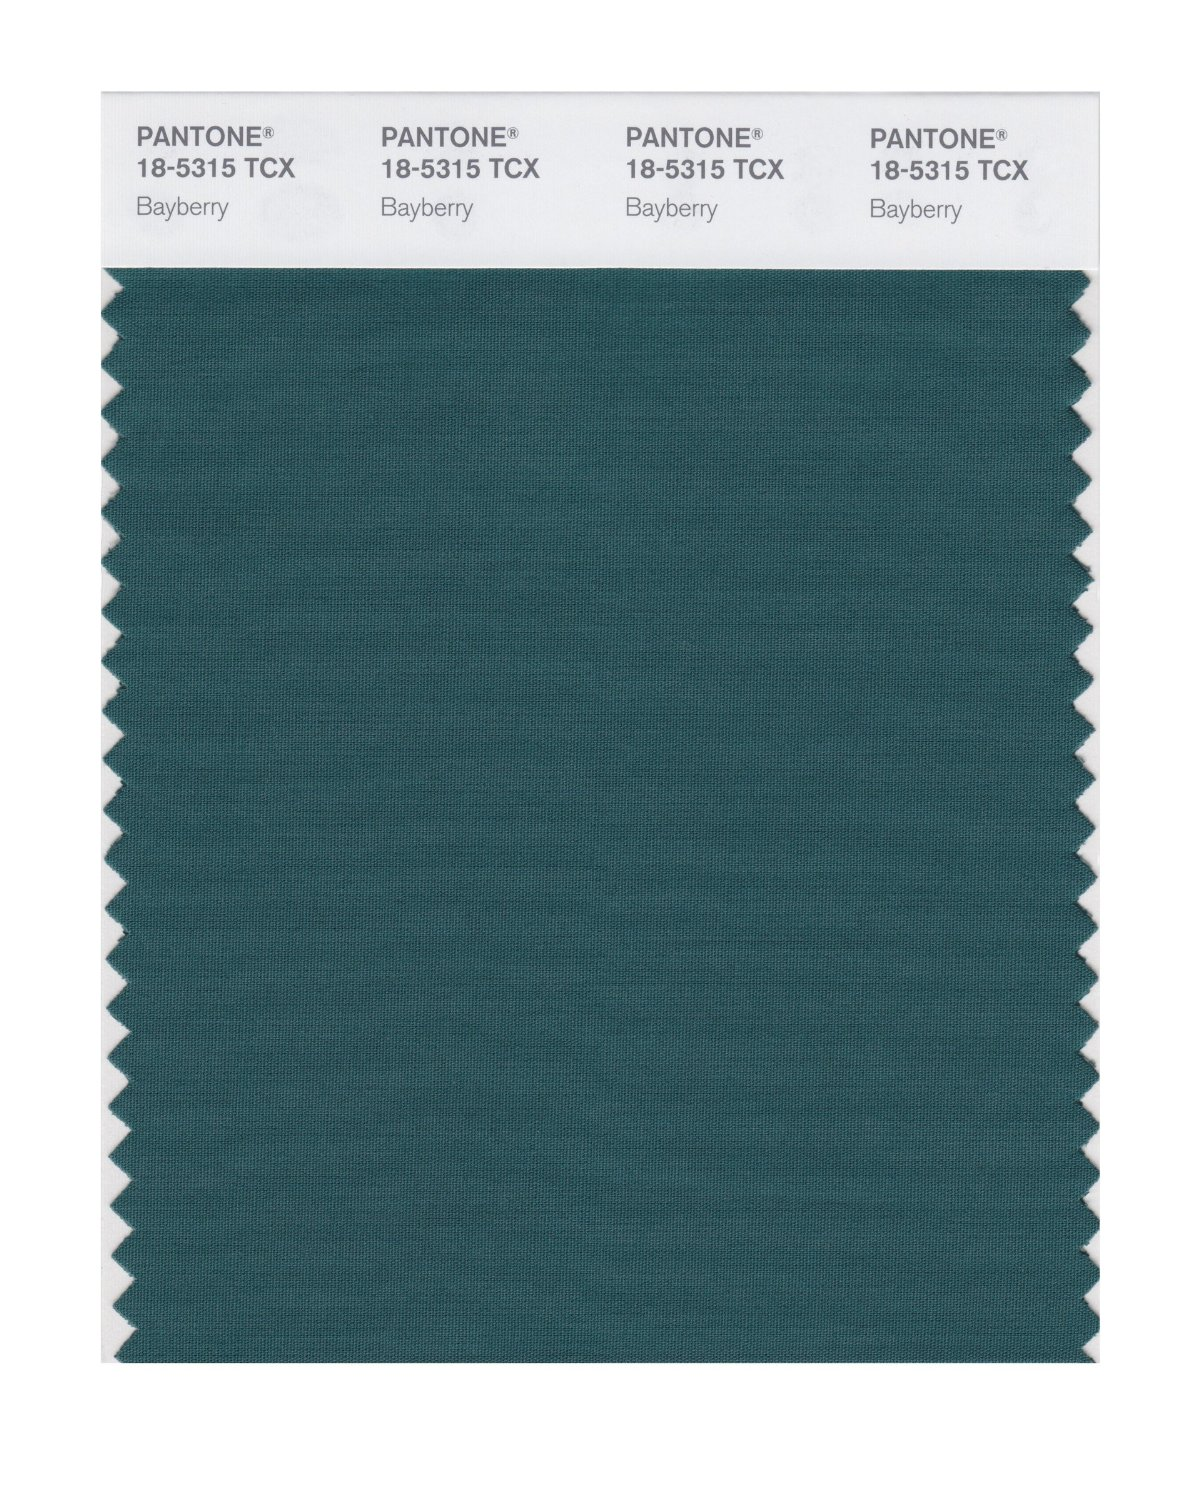 Pantone Smart Swatch 18-5315 Bayberry